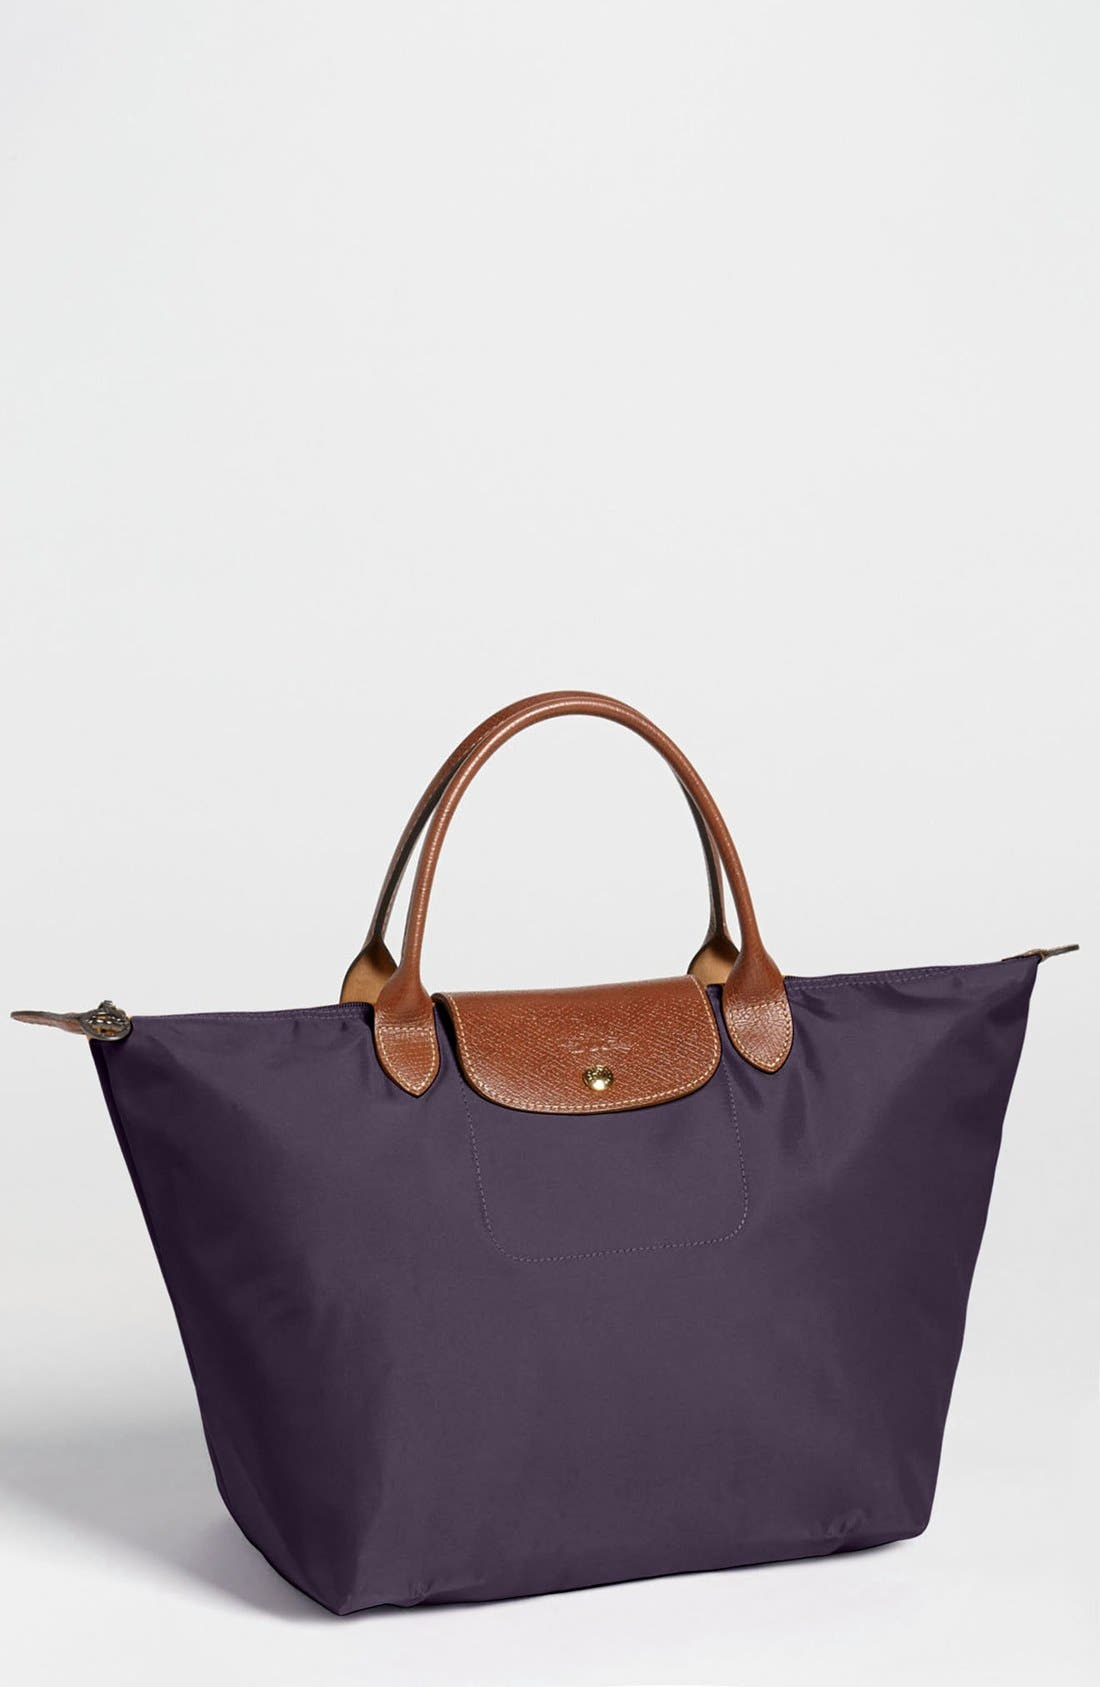 Main Image - Longchamp 'Medium Le Pliage' Nylon Tote